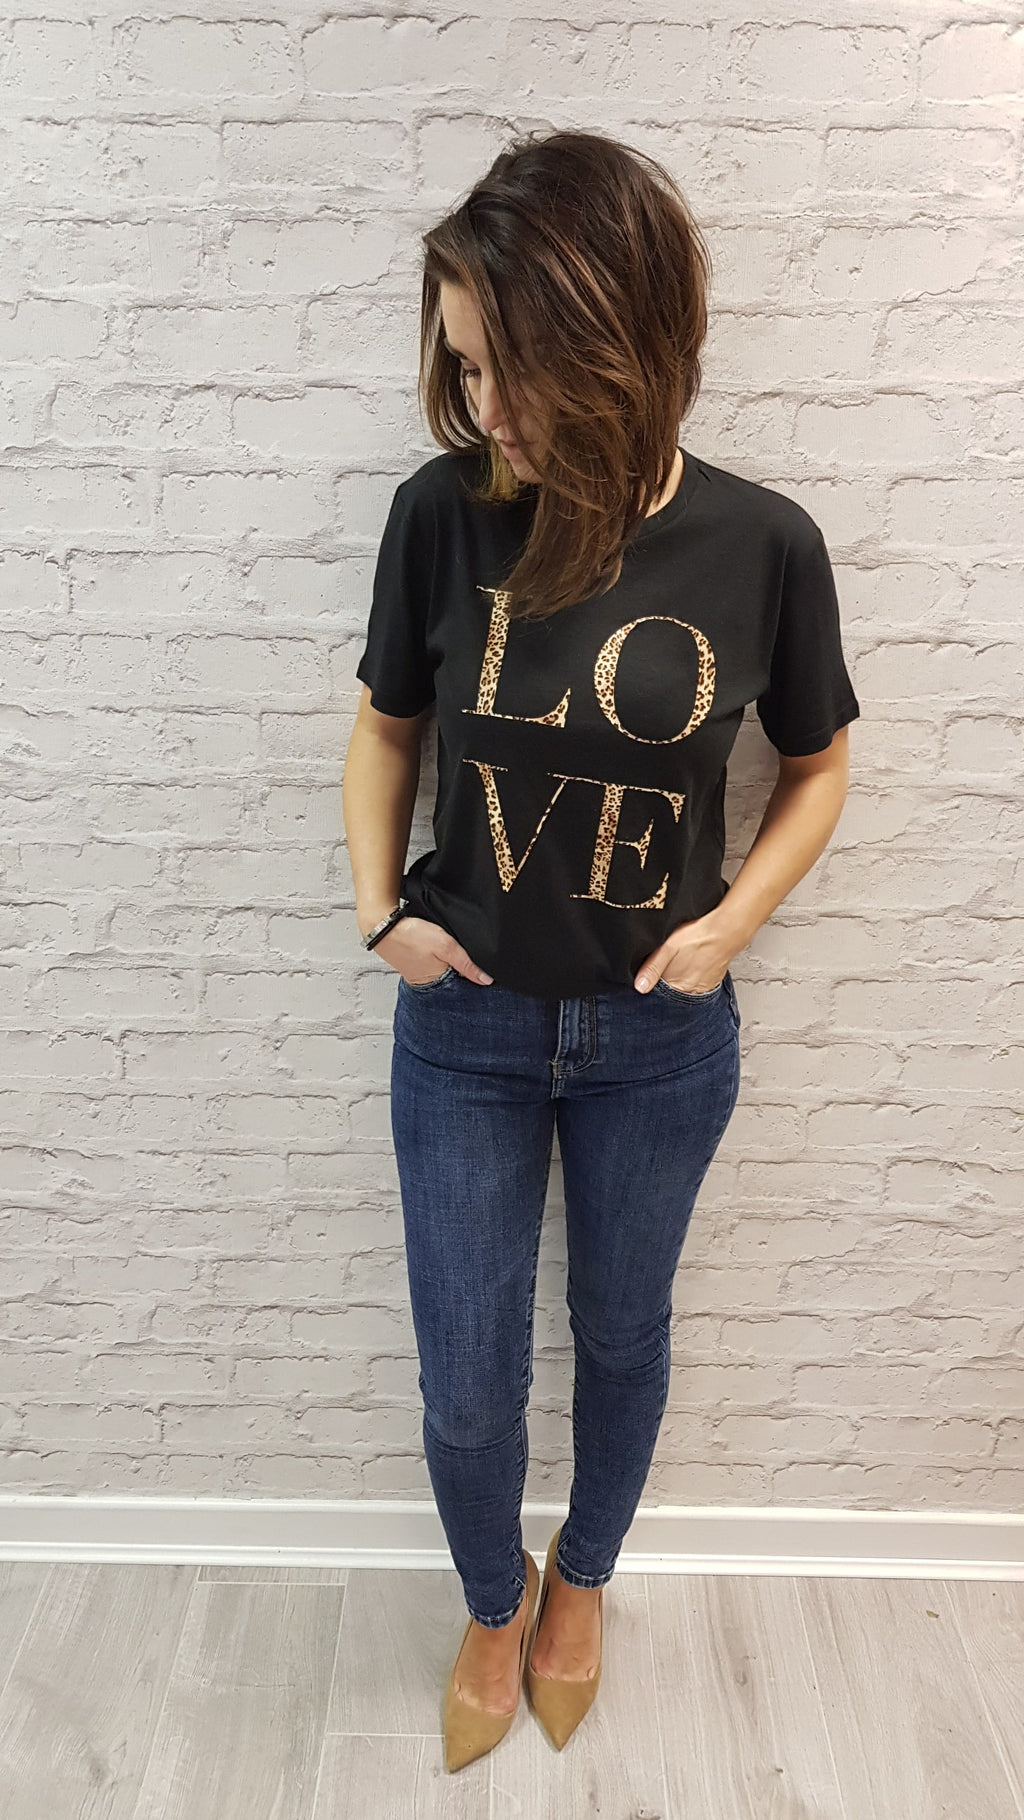 Slogan Tee Chrissi LOVE